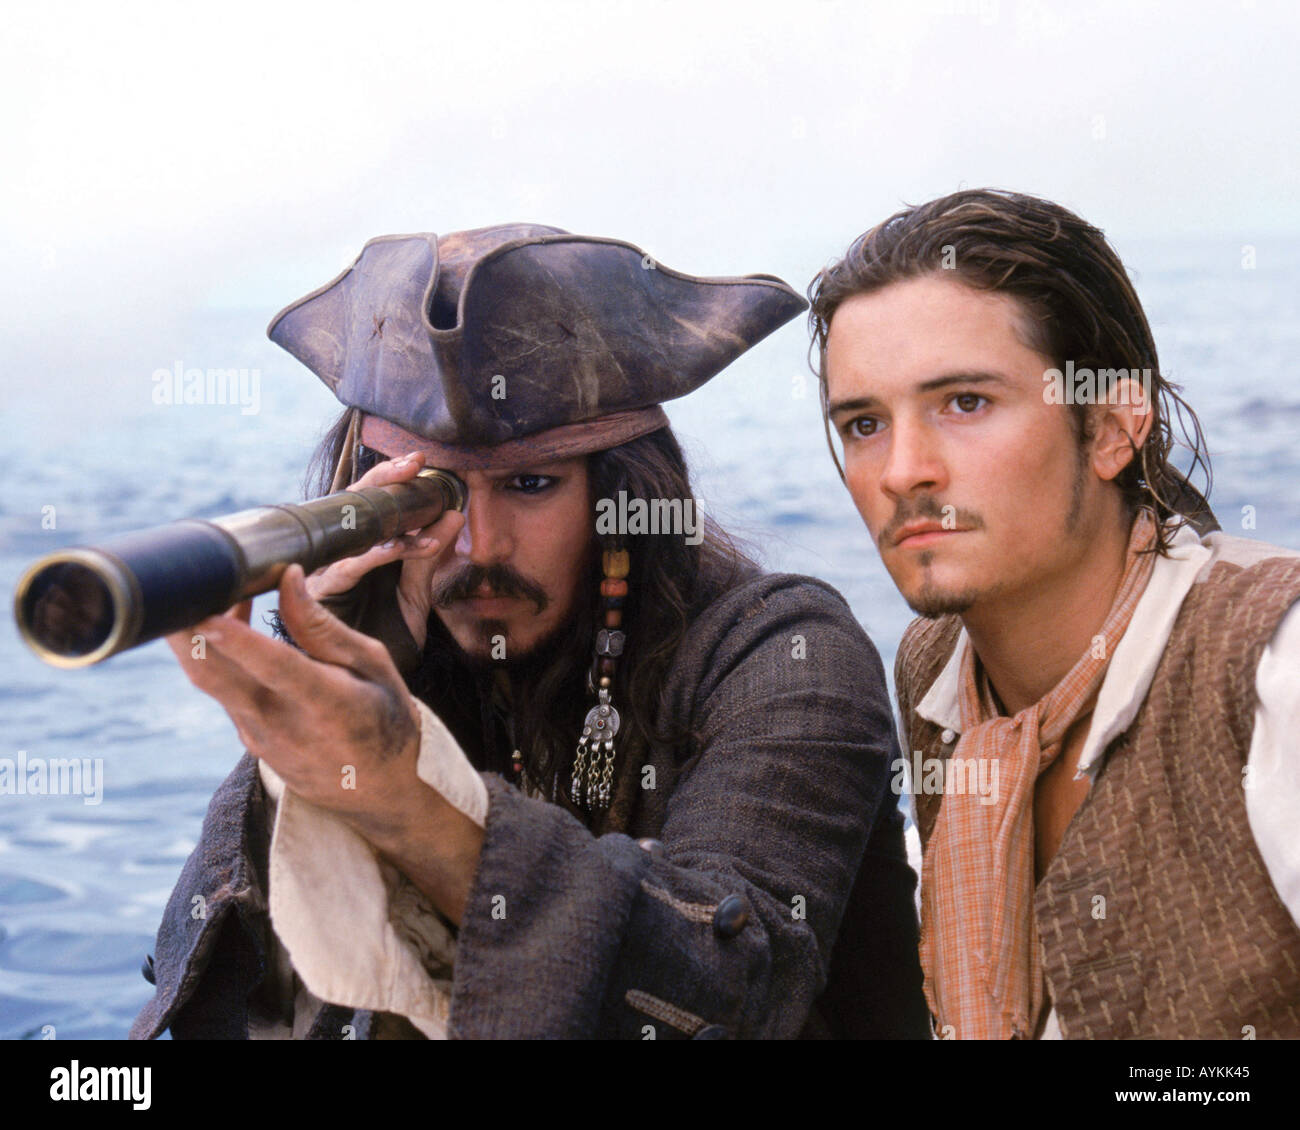 PIRATES OF THE CARIBBEAN: CURSE OF THE BLACK PEARL - Stock Image